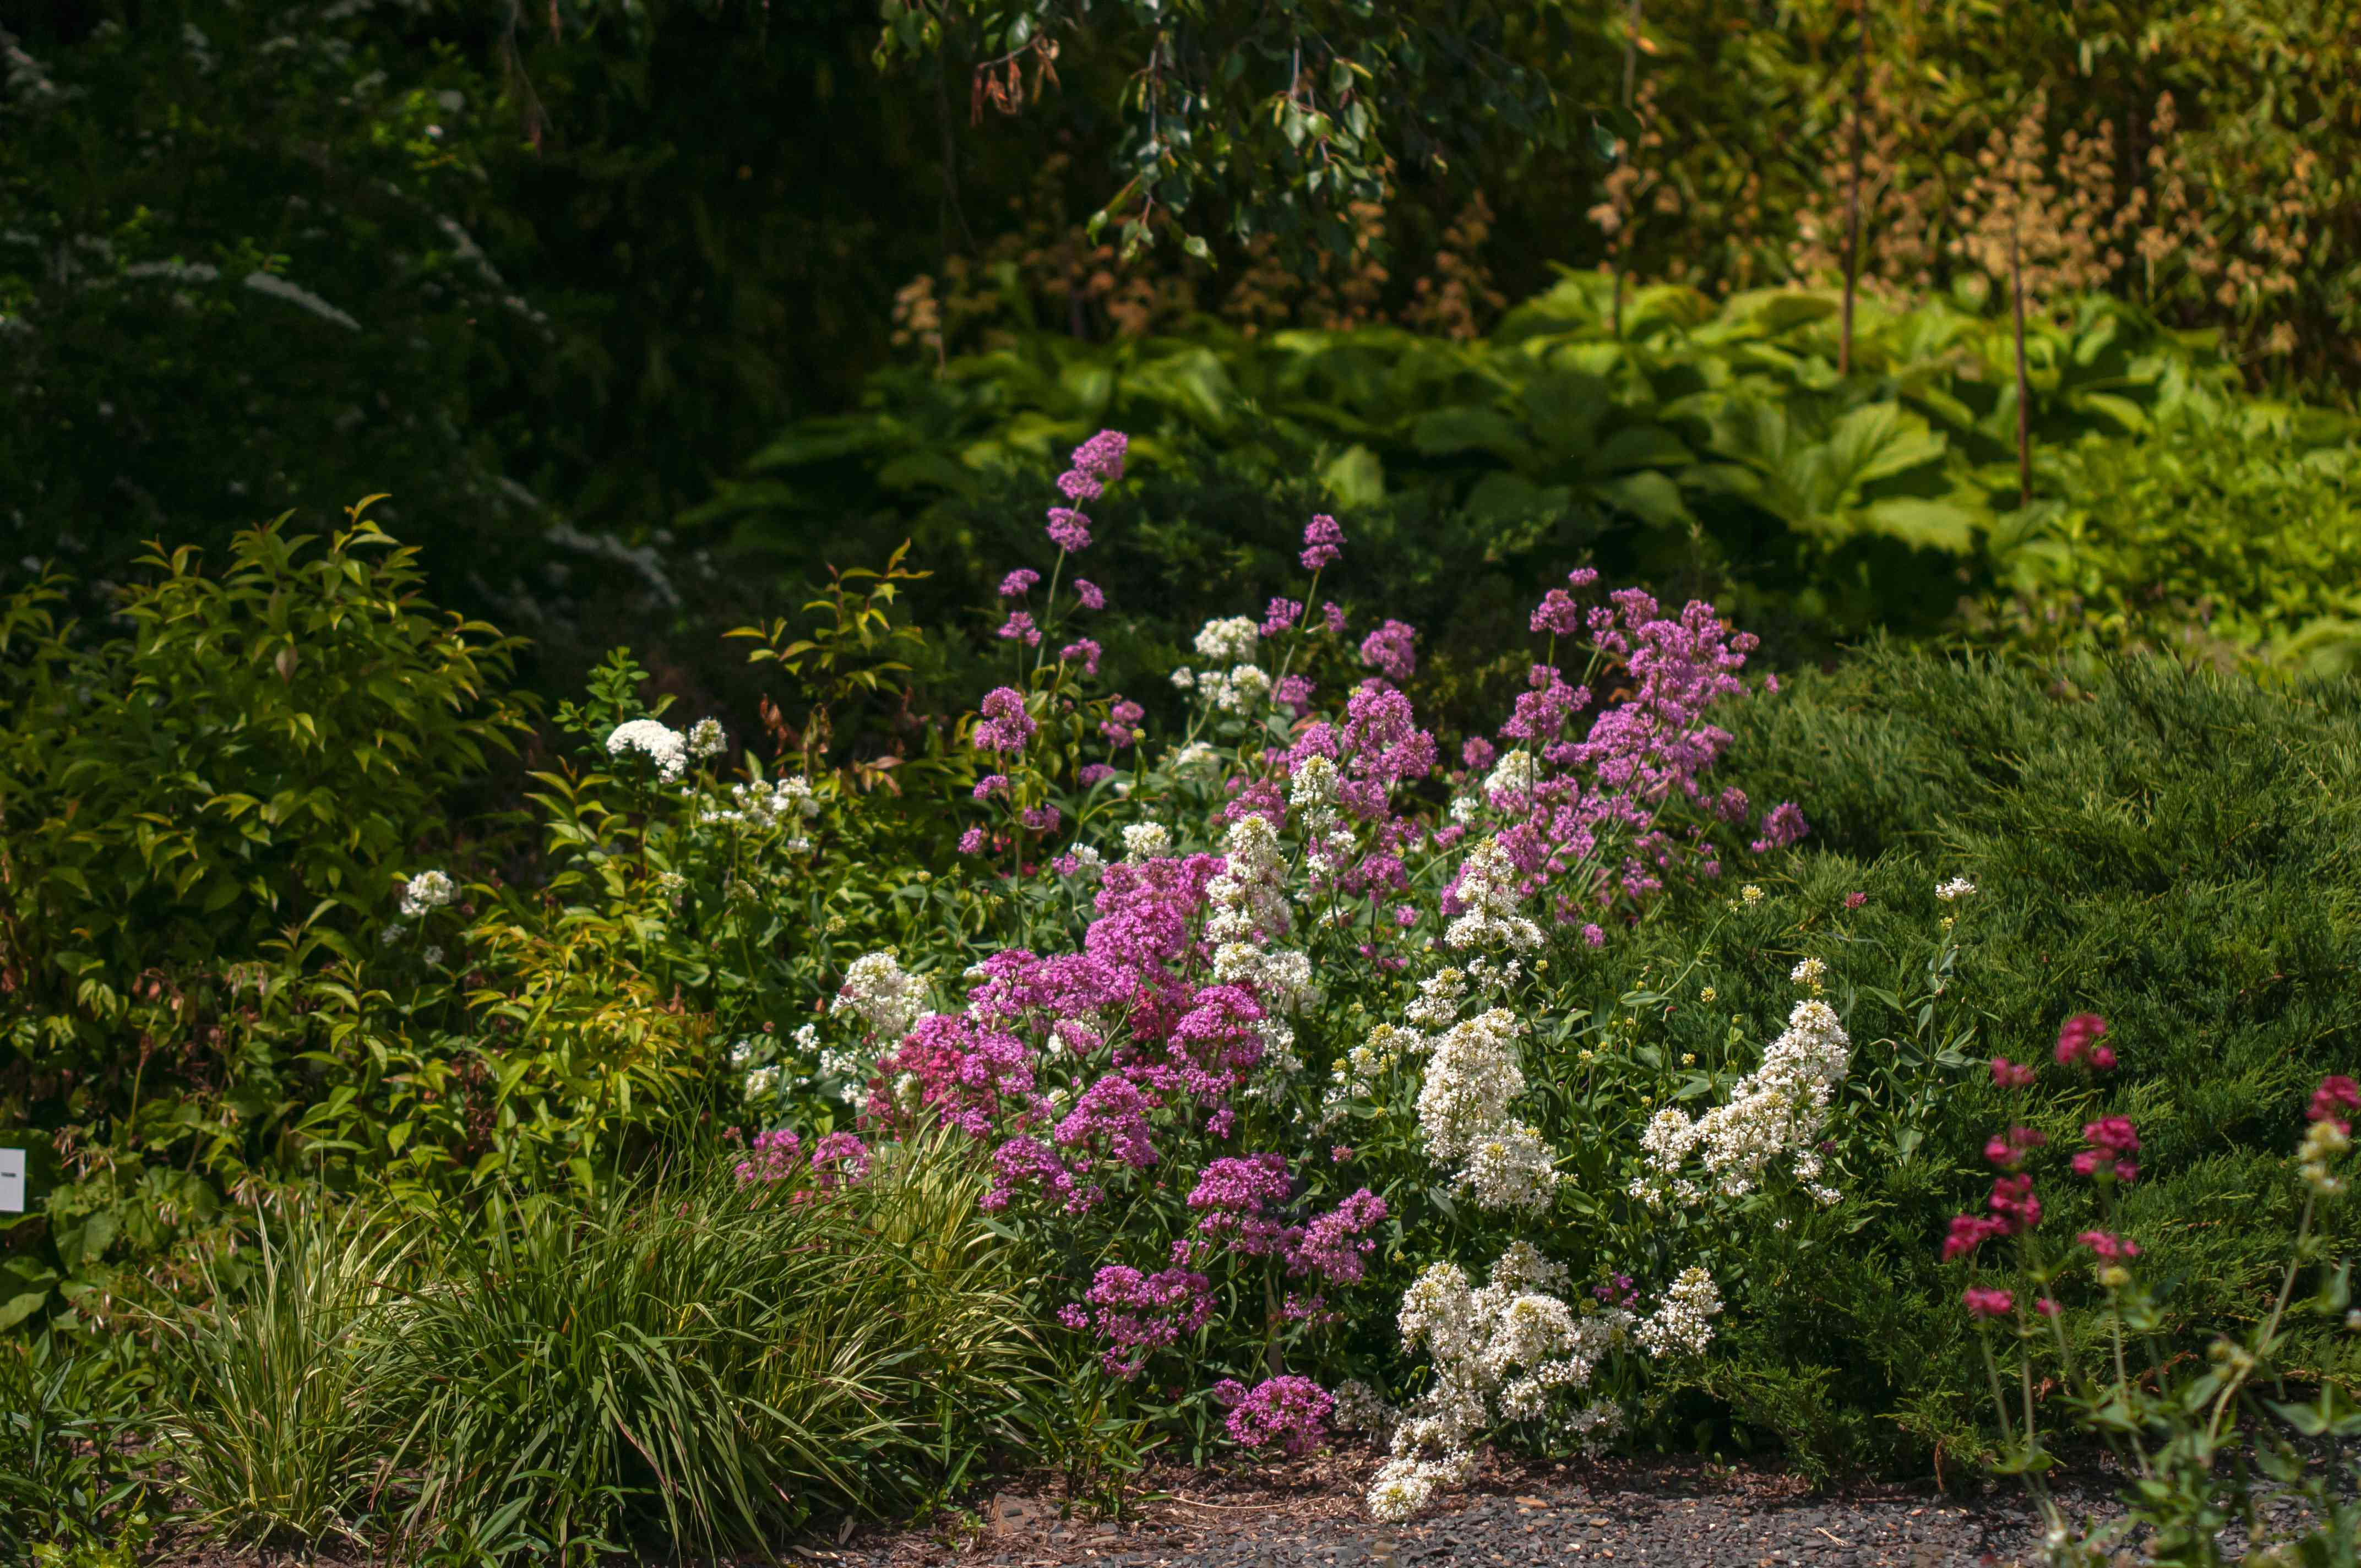 Red valerian in middle of garden with pink and white flowers